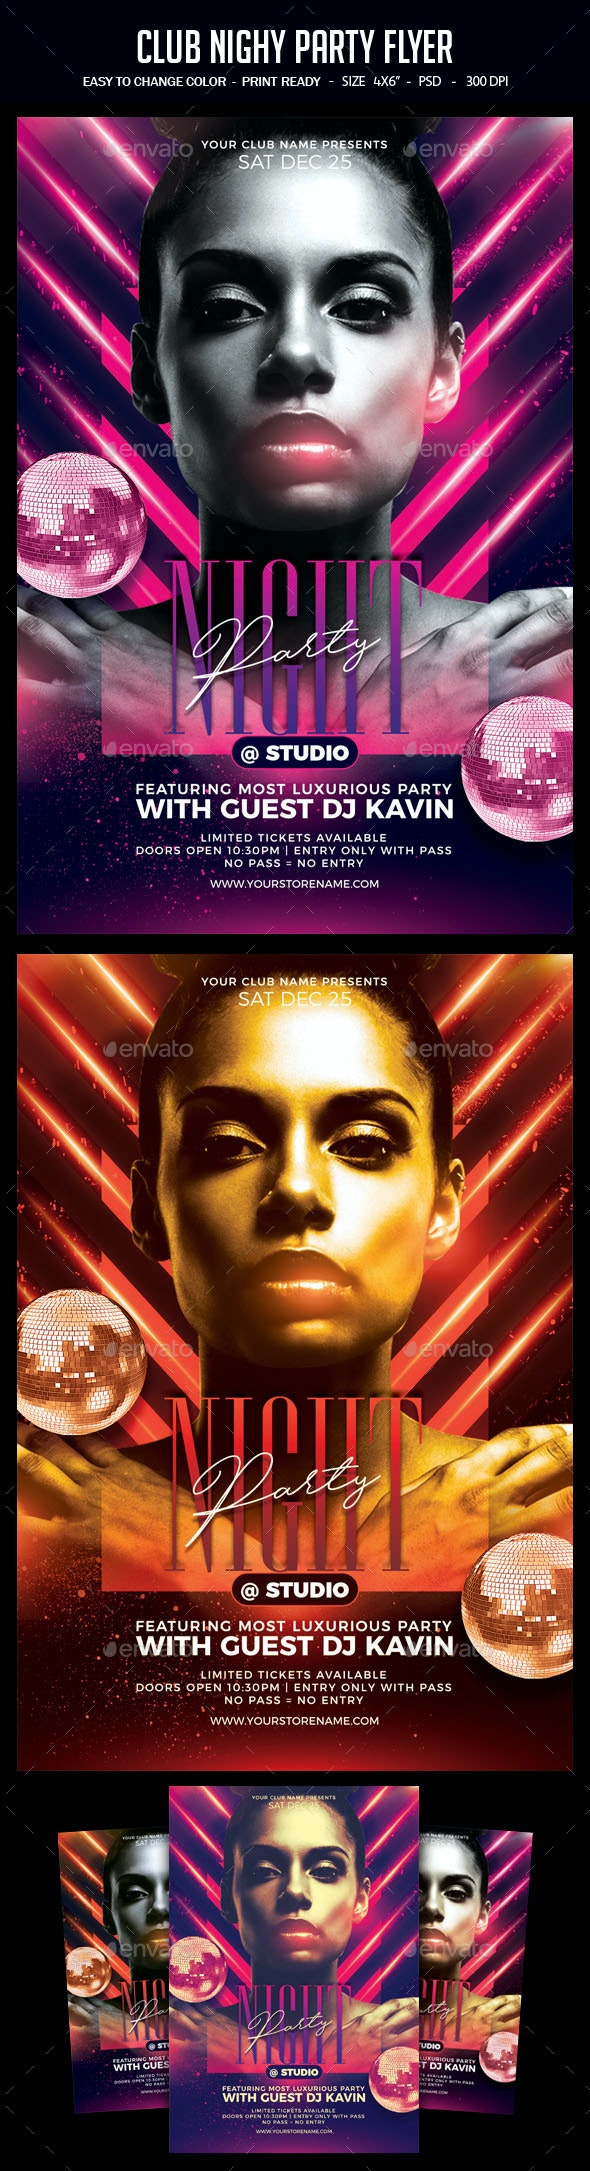 Club Nighy Party Flyer - Clubs & Parties Events